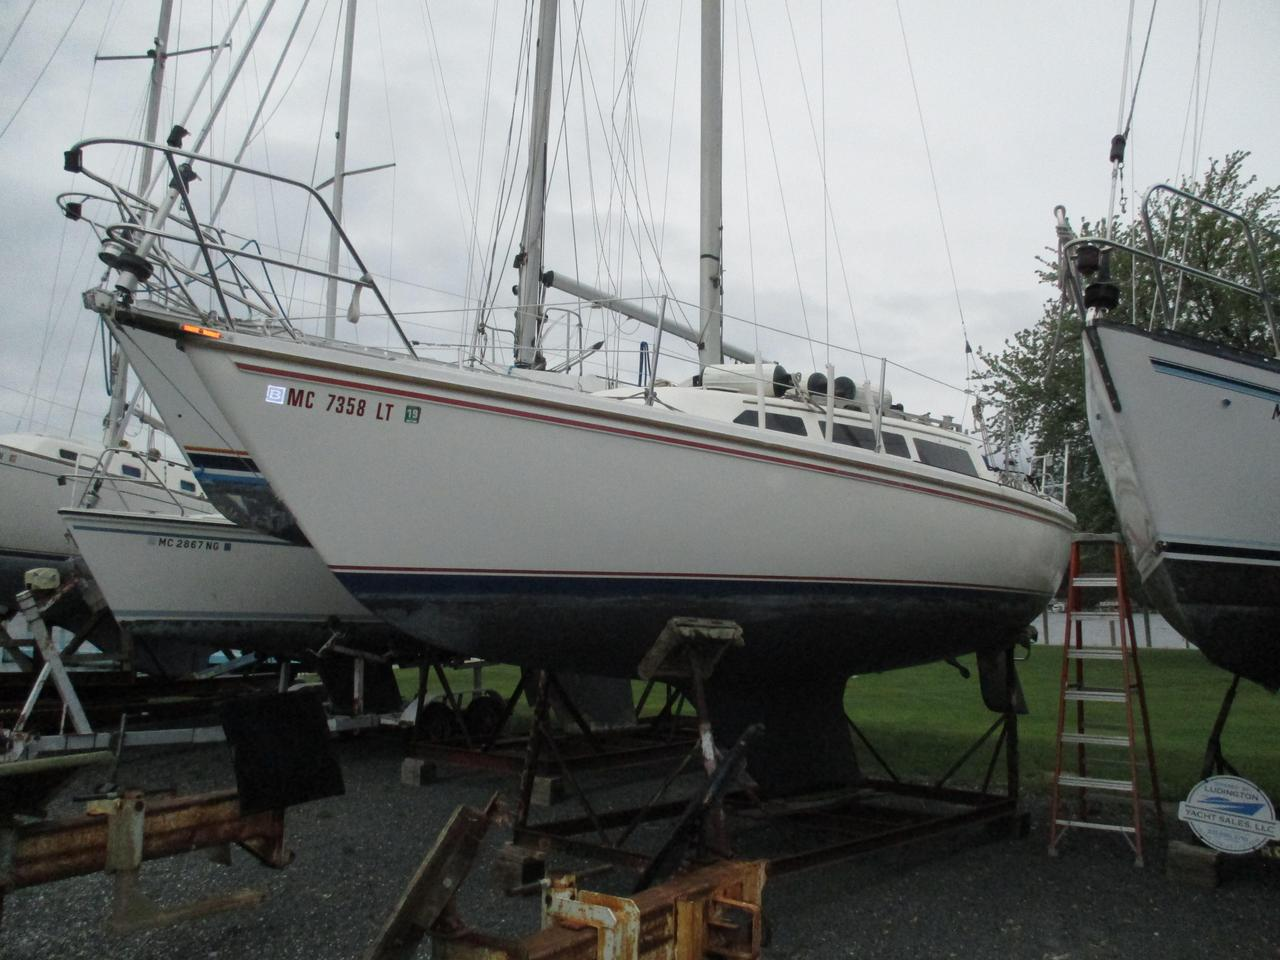 1985 Used Catalina 27 Sloop Sailboat For Sale - $9,900